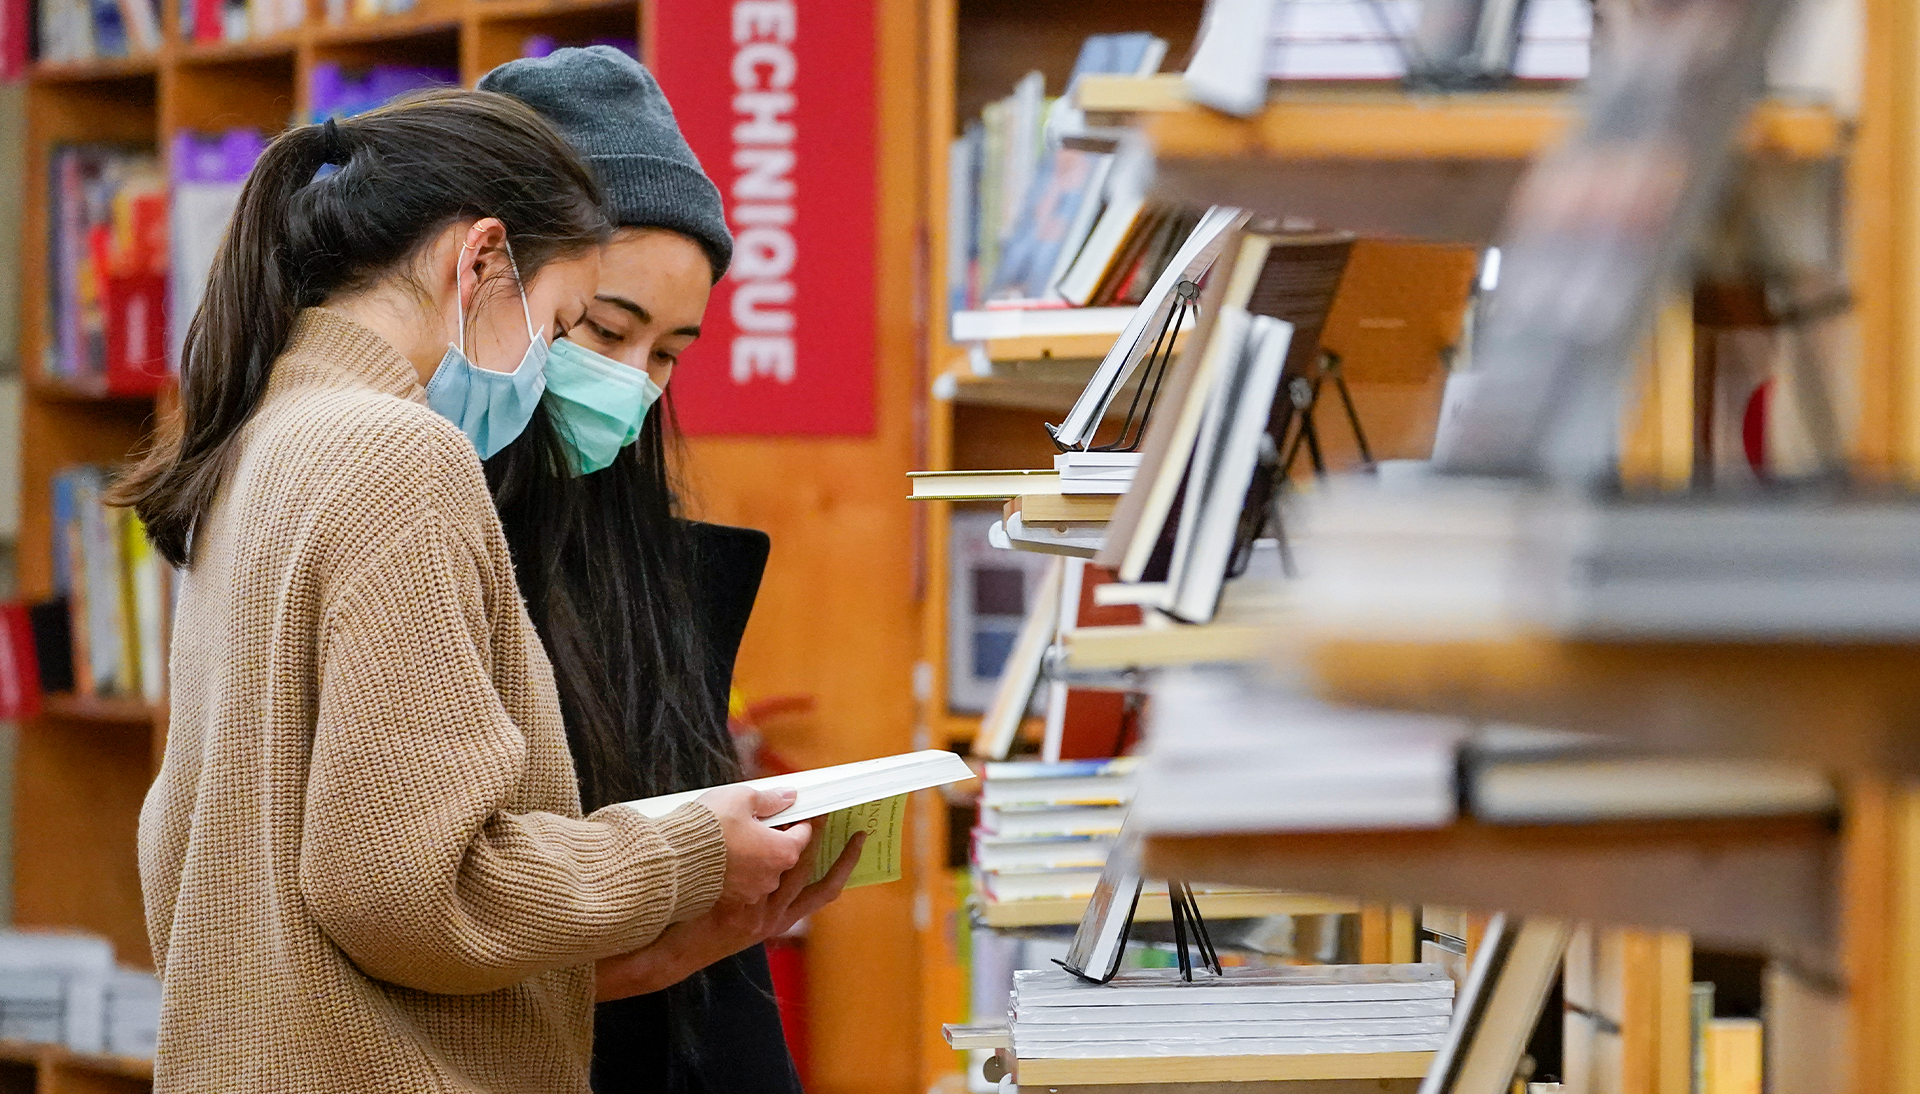 On left: two masked individuals looking down at books in a bookstore; books and bookshelves in background